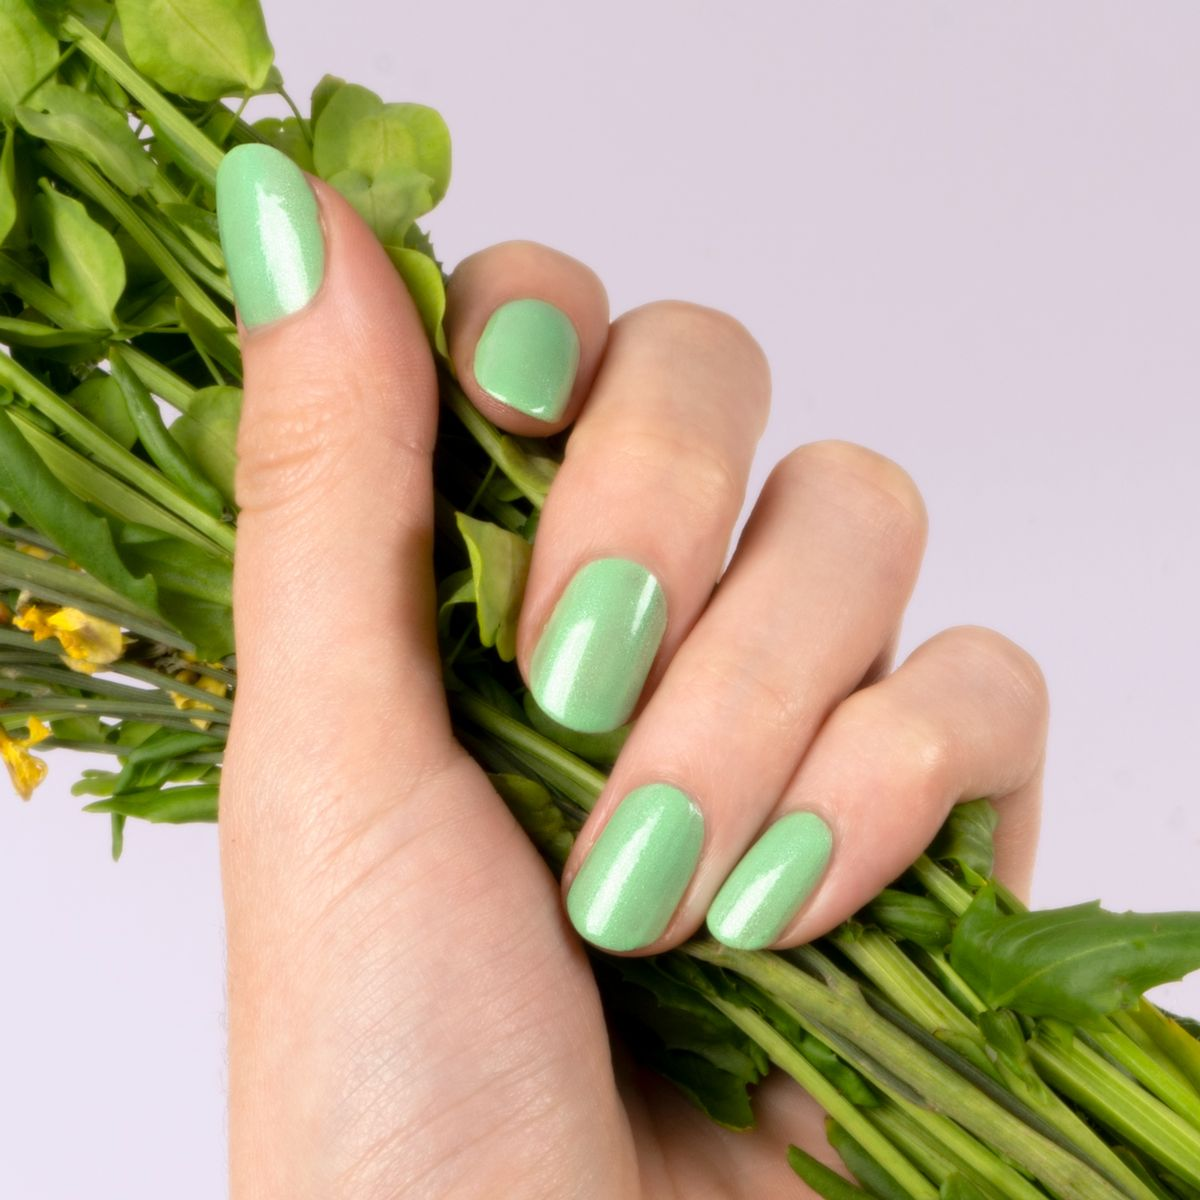 ORLY Launches Superbloom Breathable Laquers